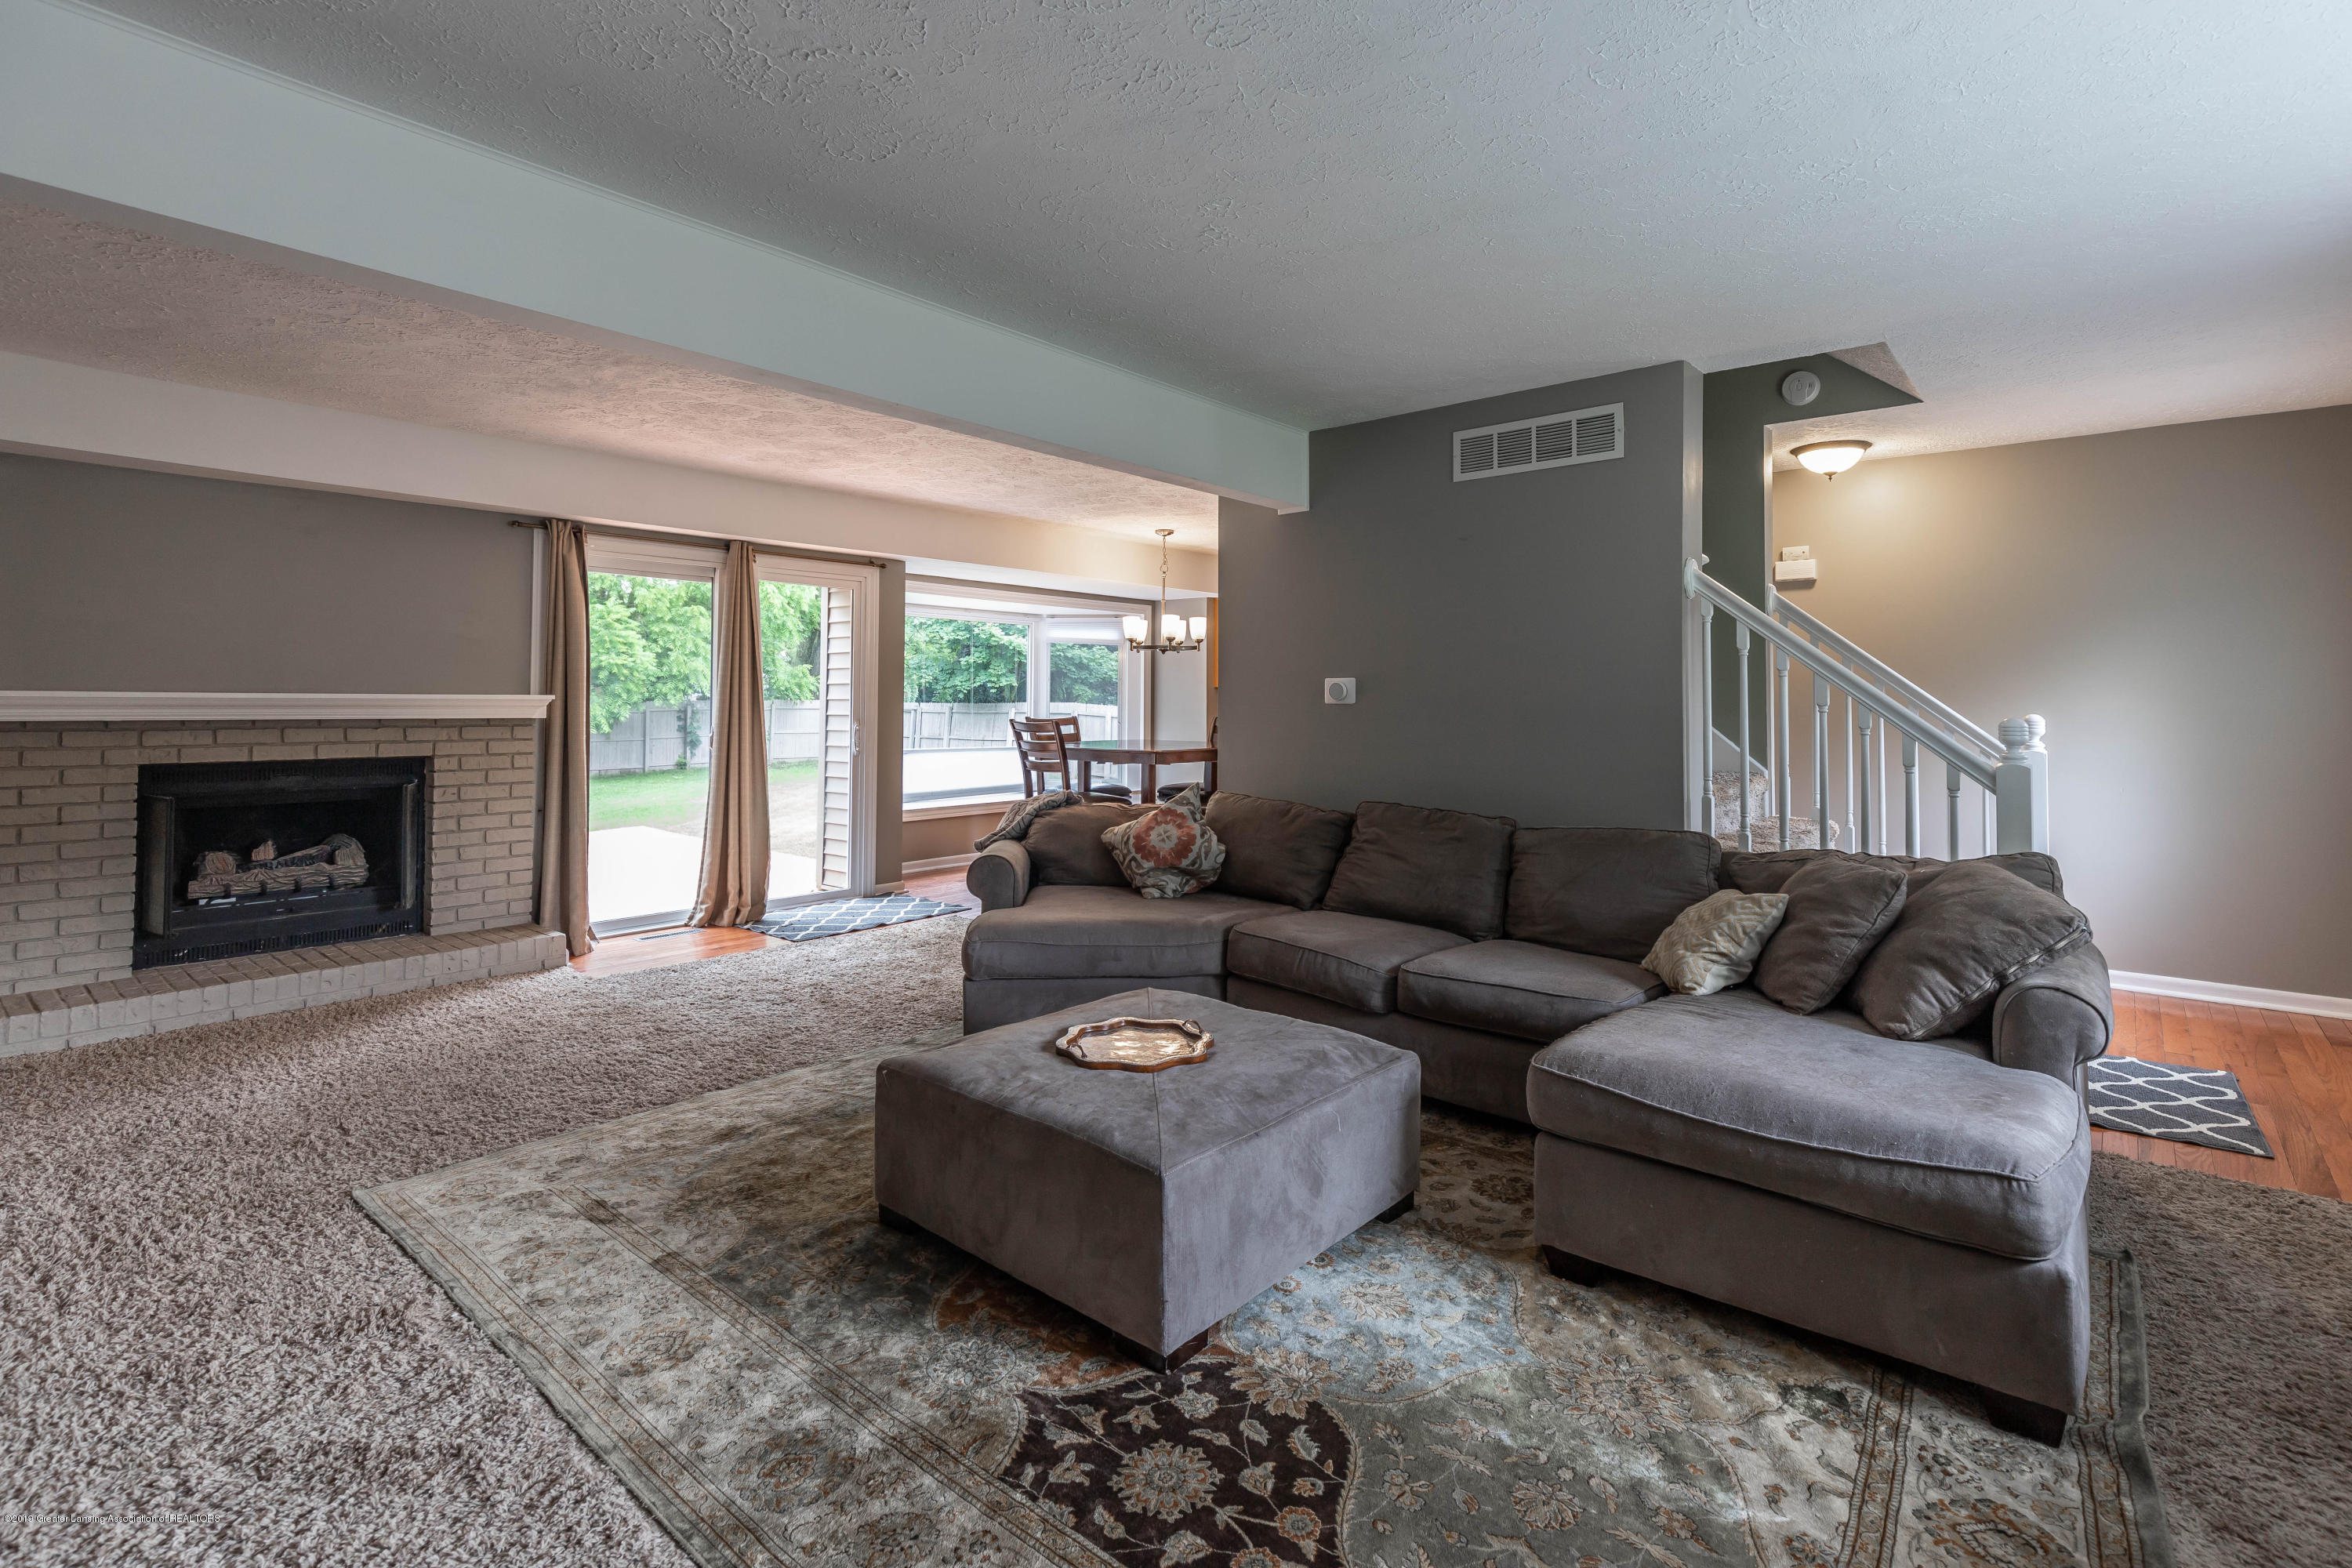 2497 Graystone Dr - 4. Living Room - 6